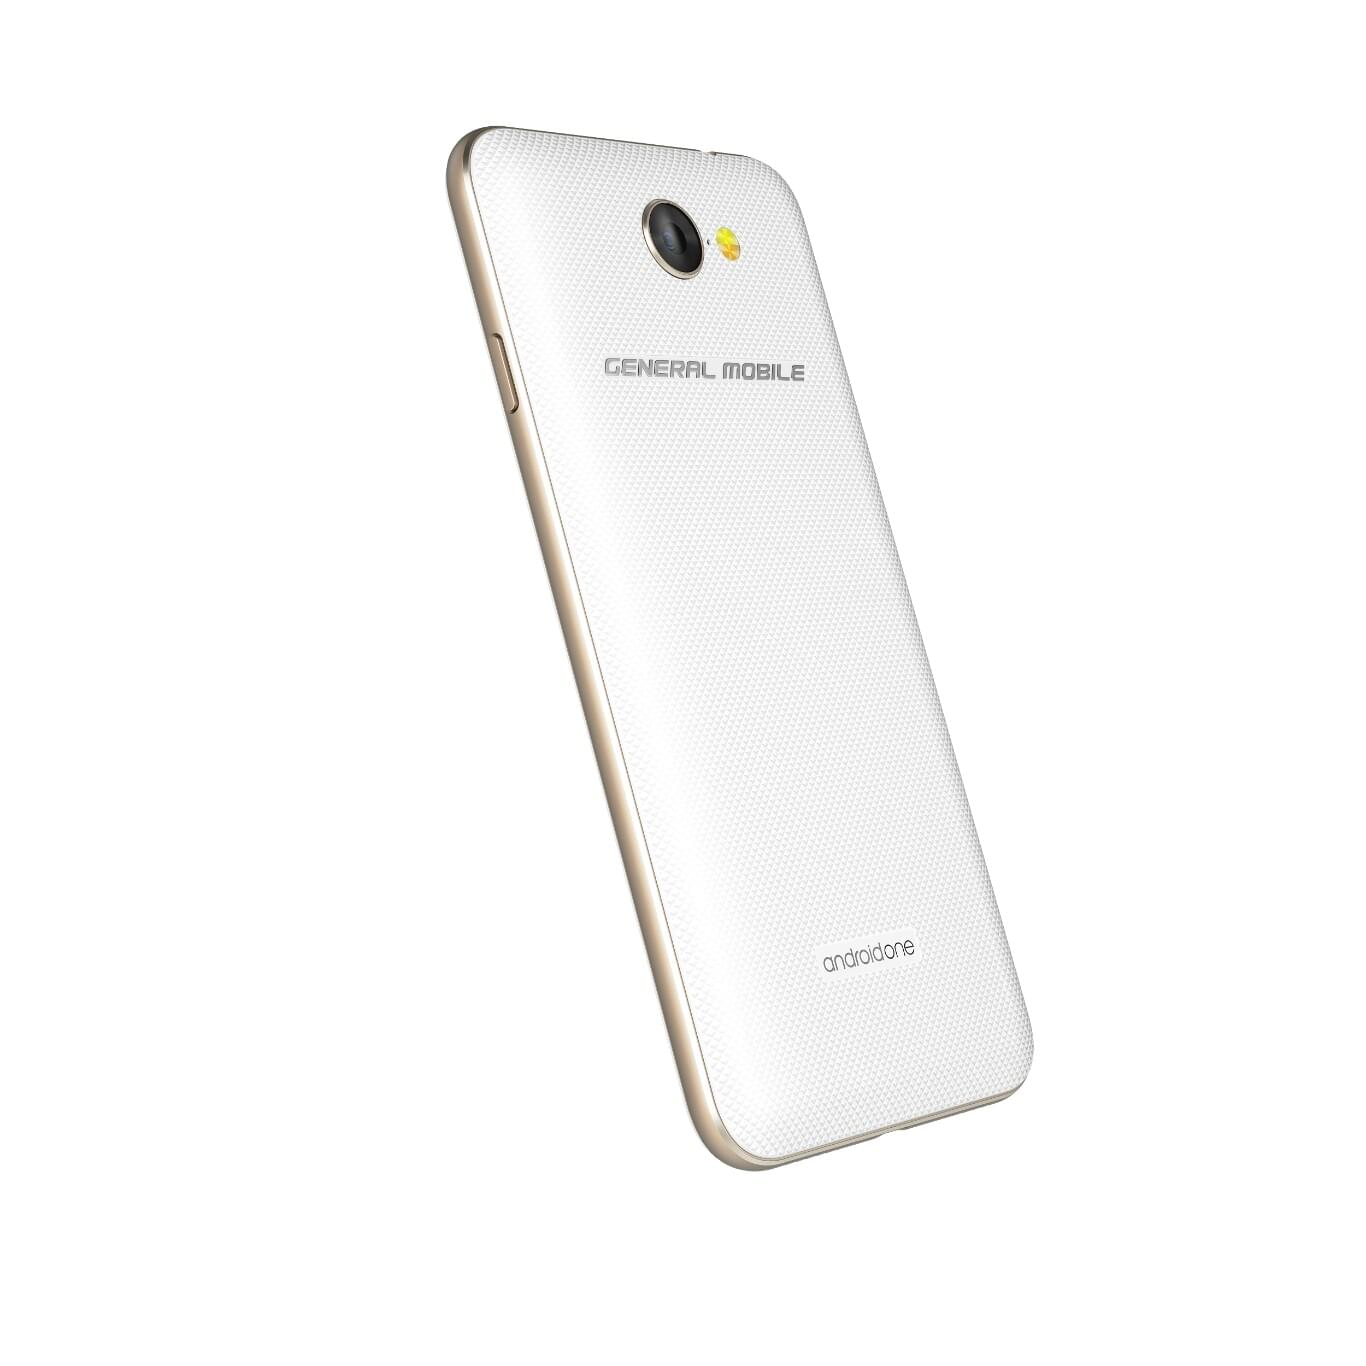 1366x1366 General Mobile Announces Gm 6, A New Android One Smartphone